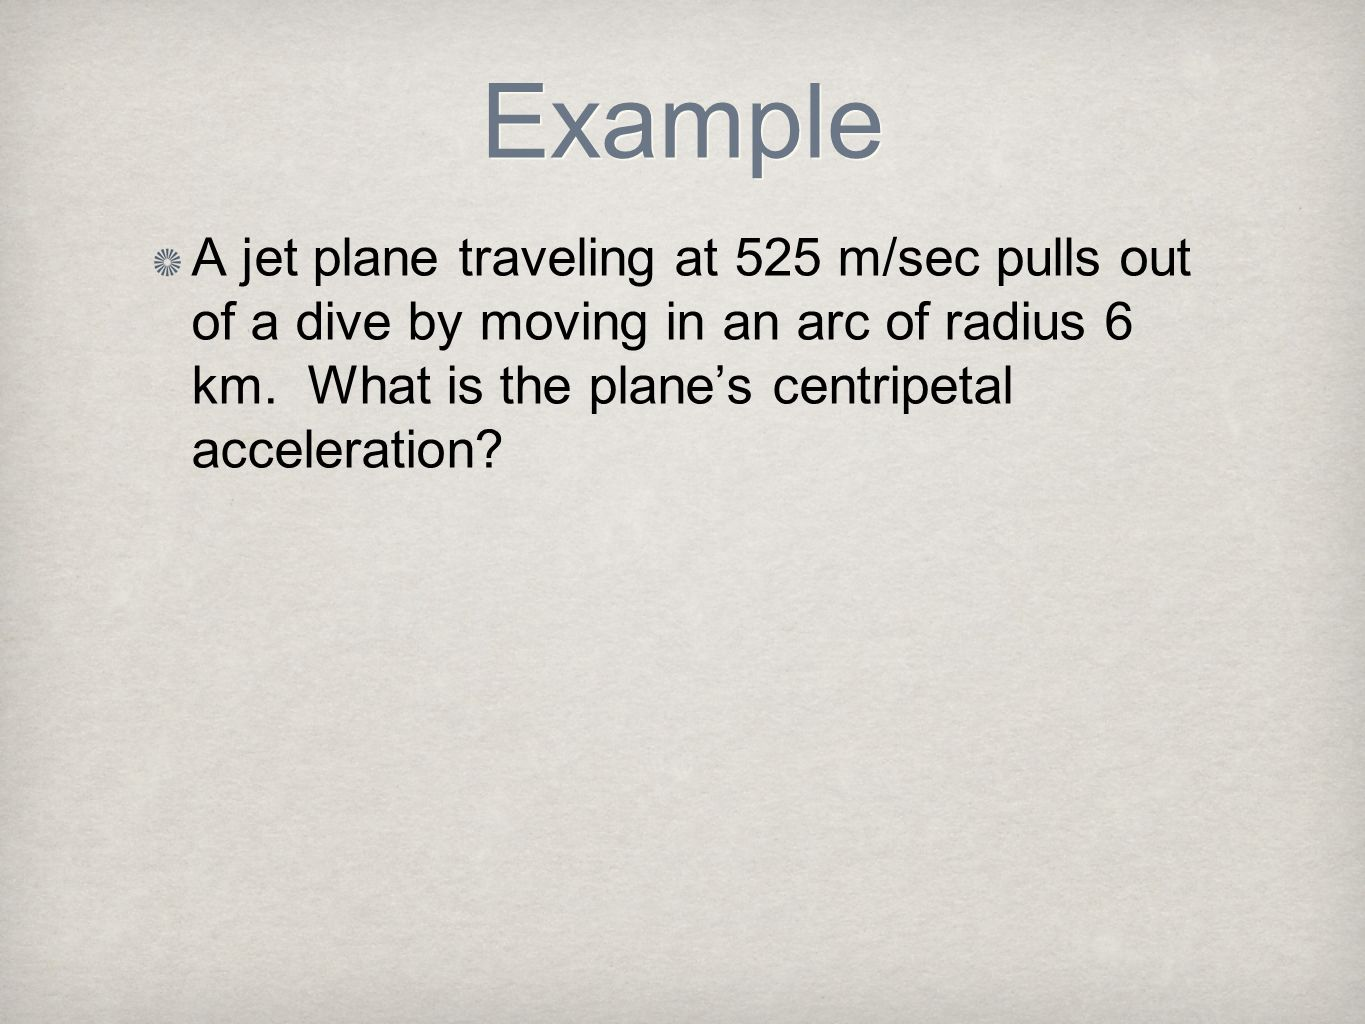 Example A jet plane traveling at 525 m/sec pulls out of a dive by moving in an arc of radius 6 km. What is the plane's centripetal acceleration